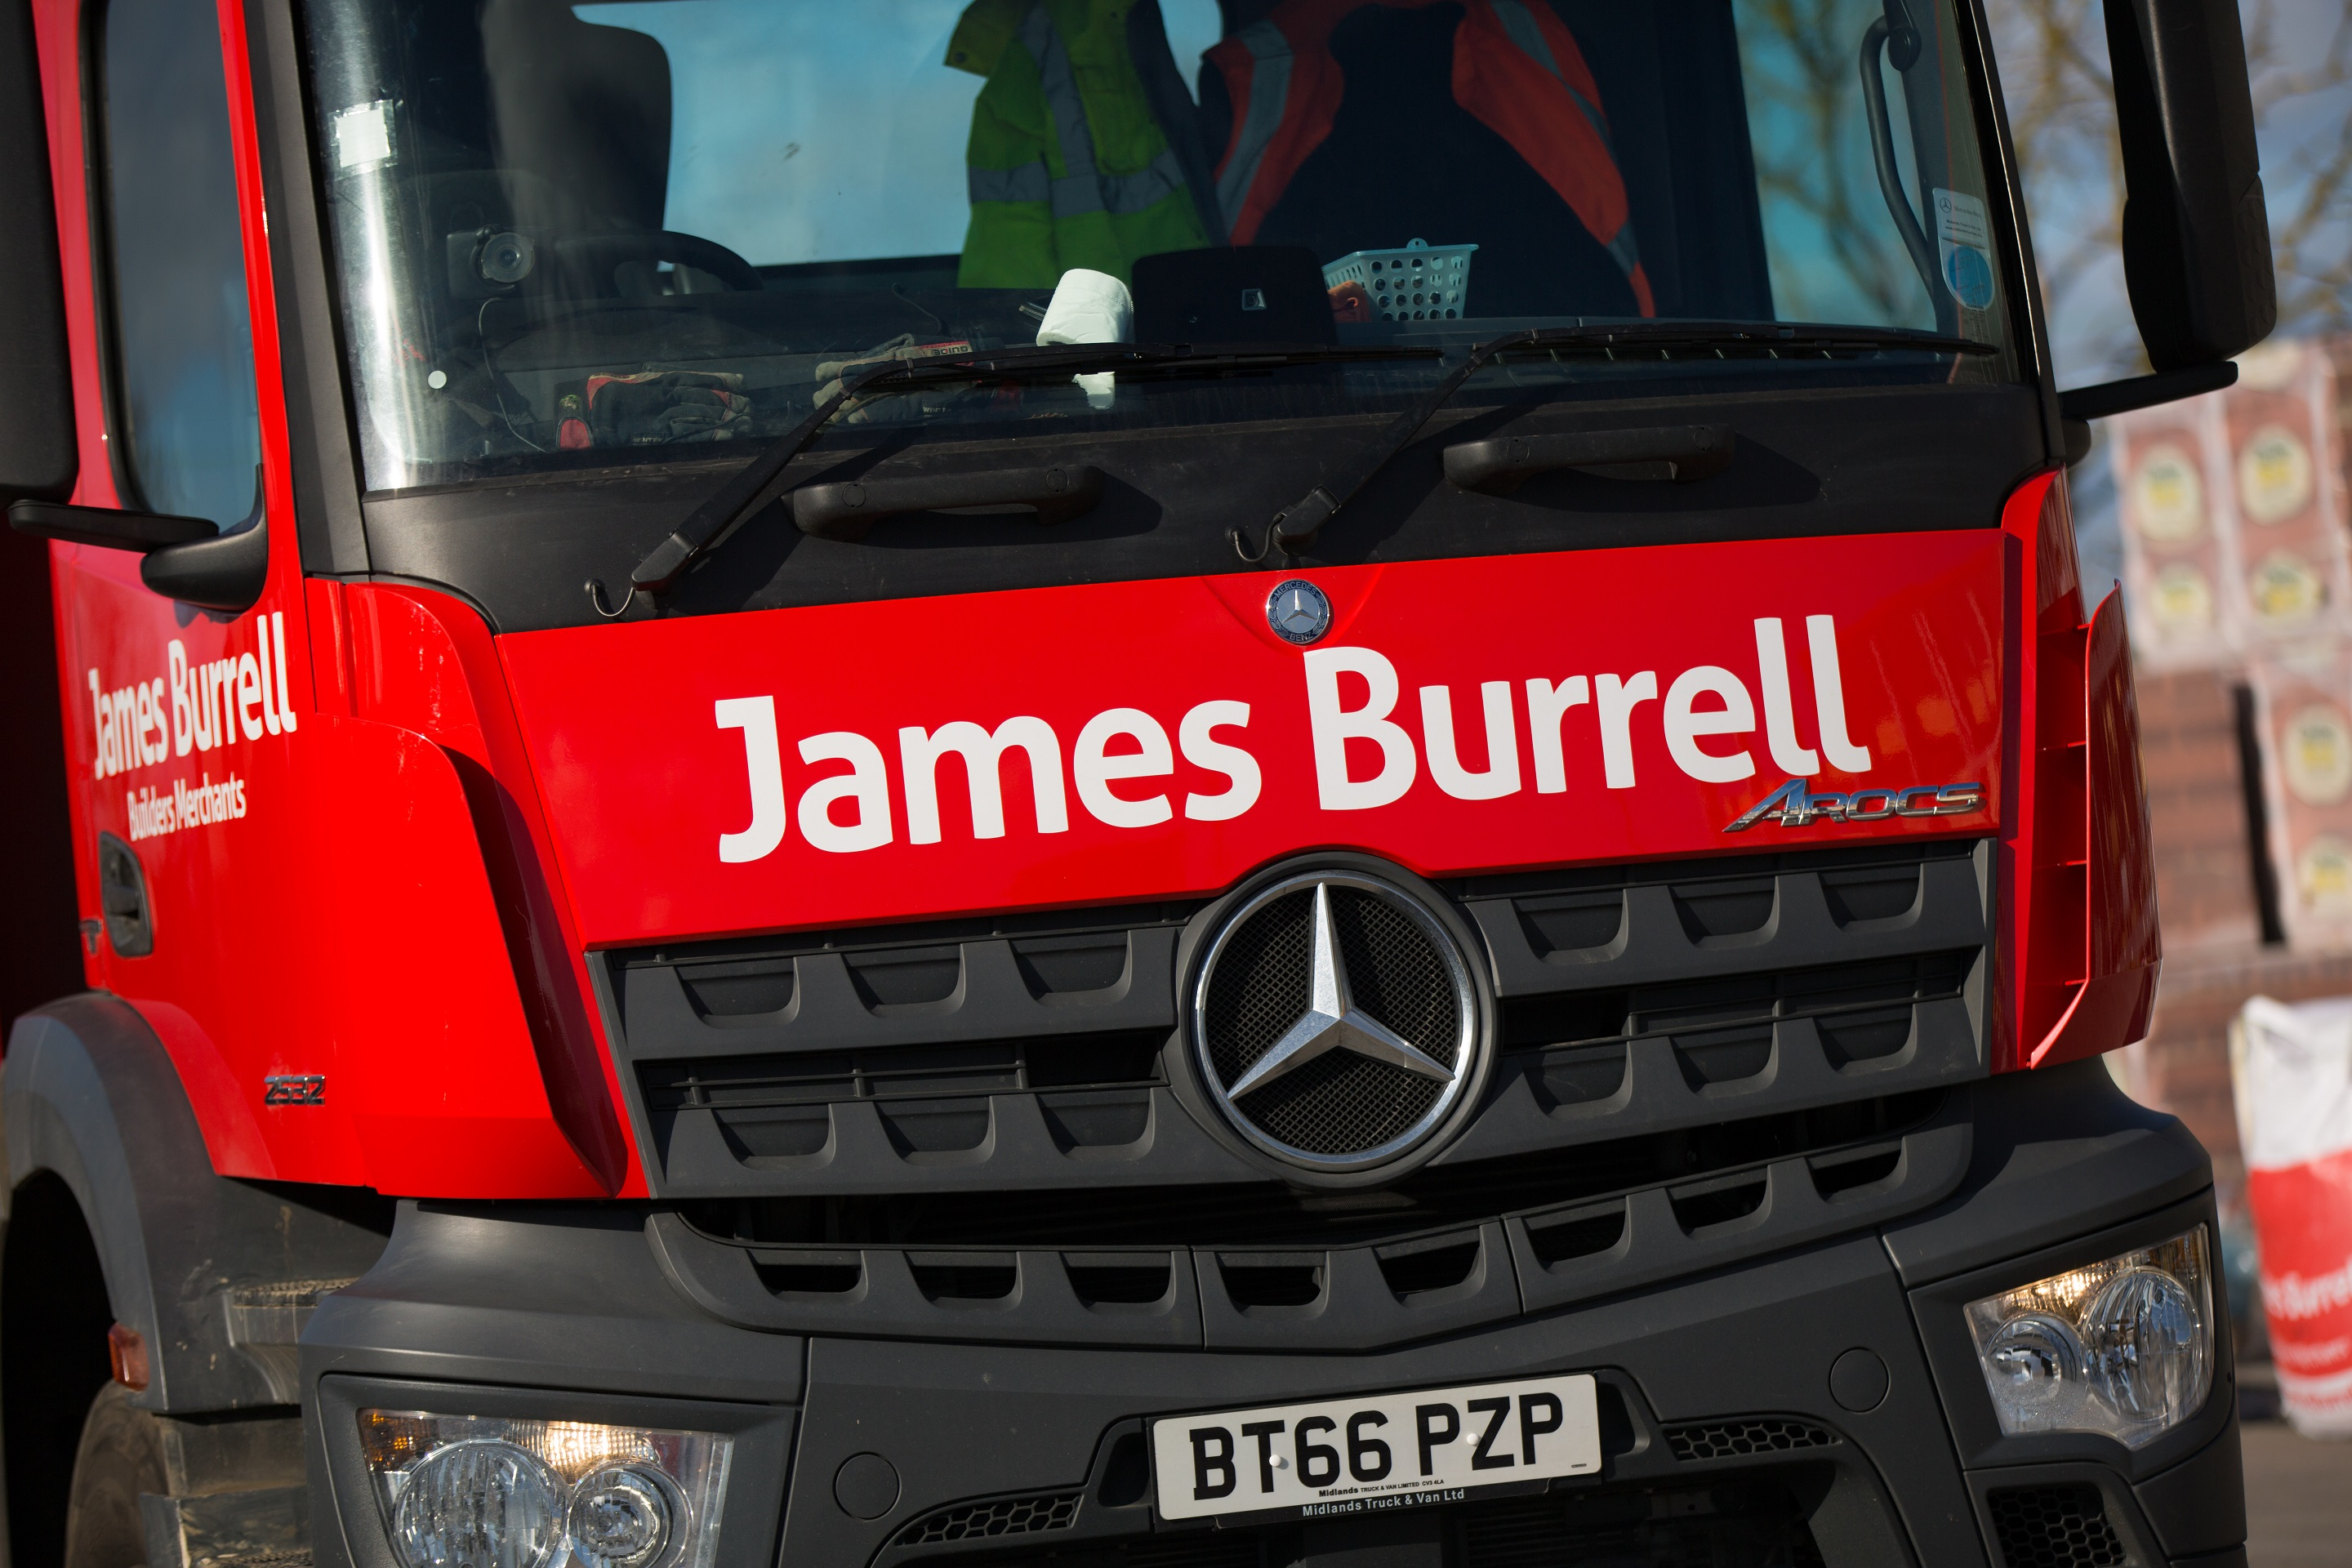 James Burrell To Open New Morpeth Branch Following 163 1m